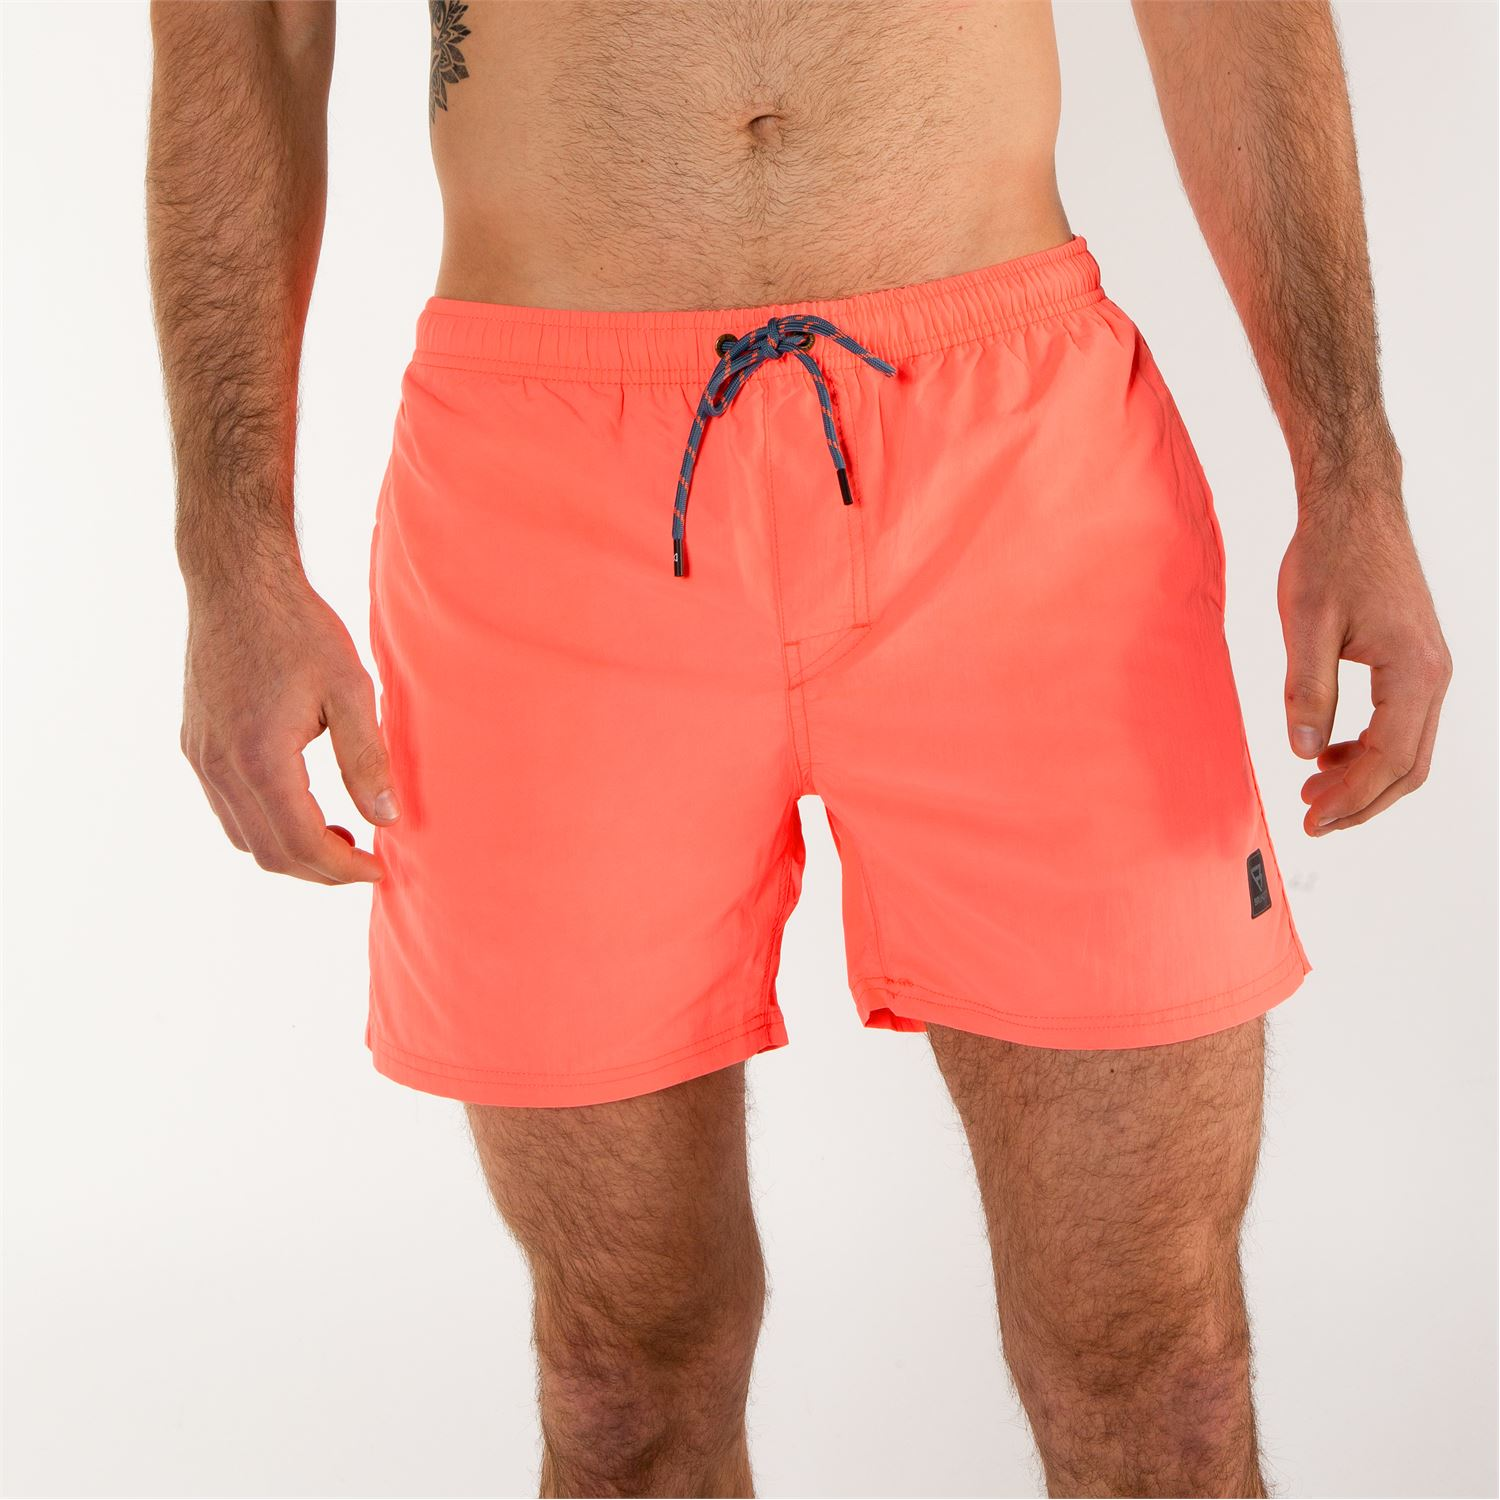 2a66774e1c Brunotti Hester (pink) - men swimshorts - Brunotti online shop. Our model  is 183 cm tall and wears size M